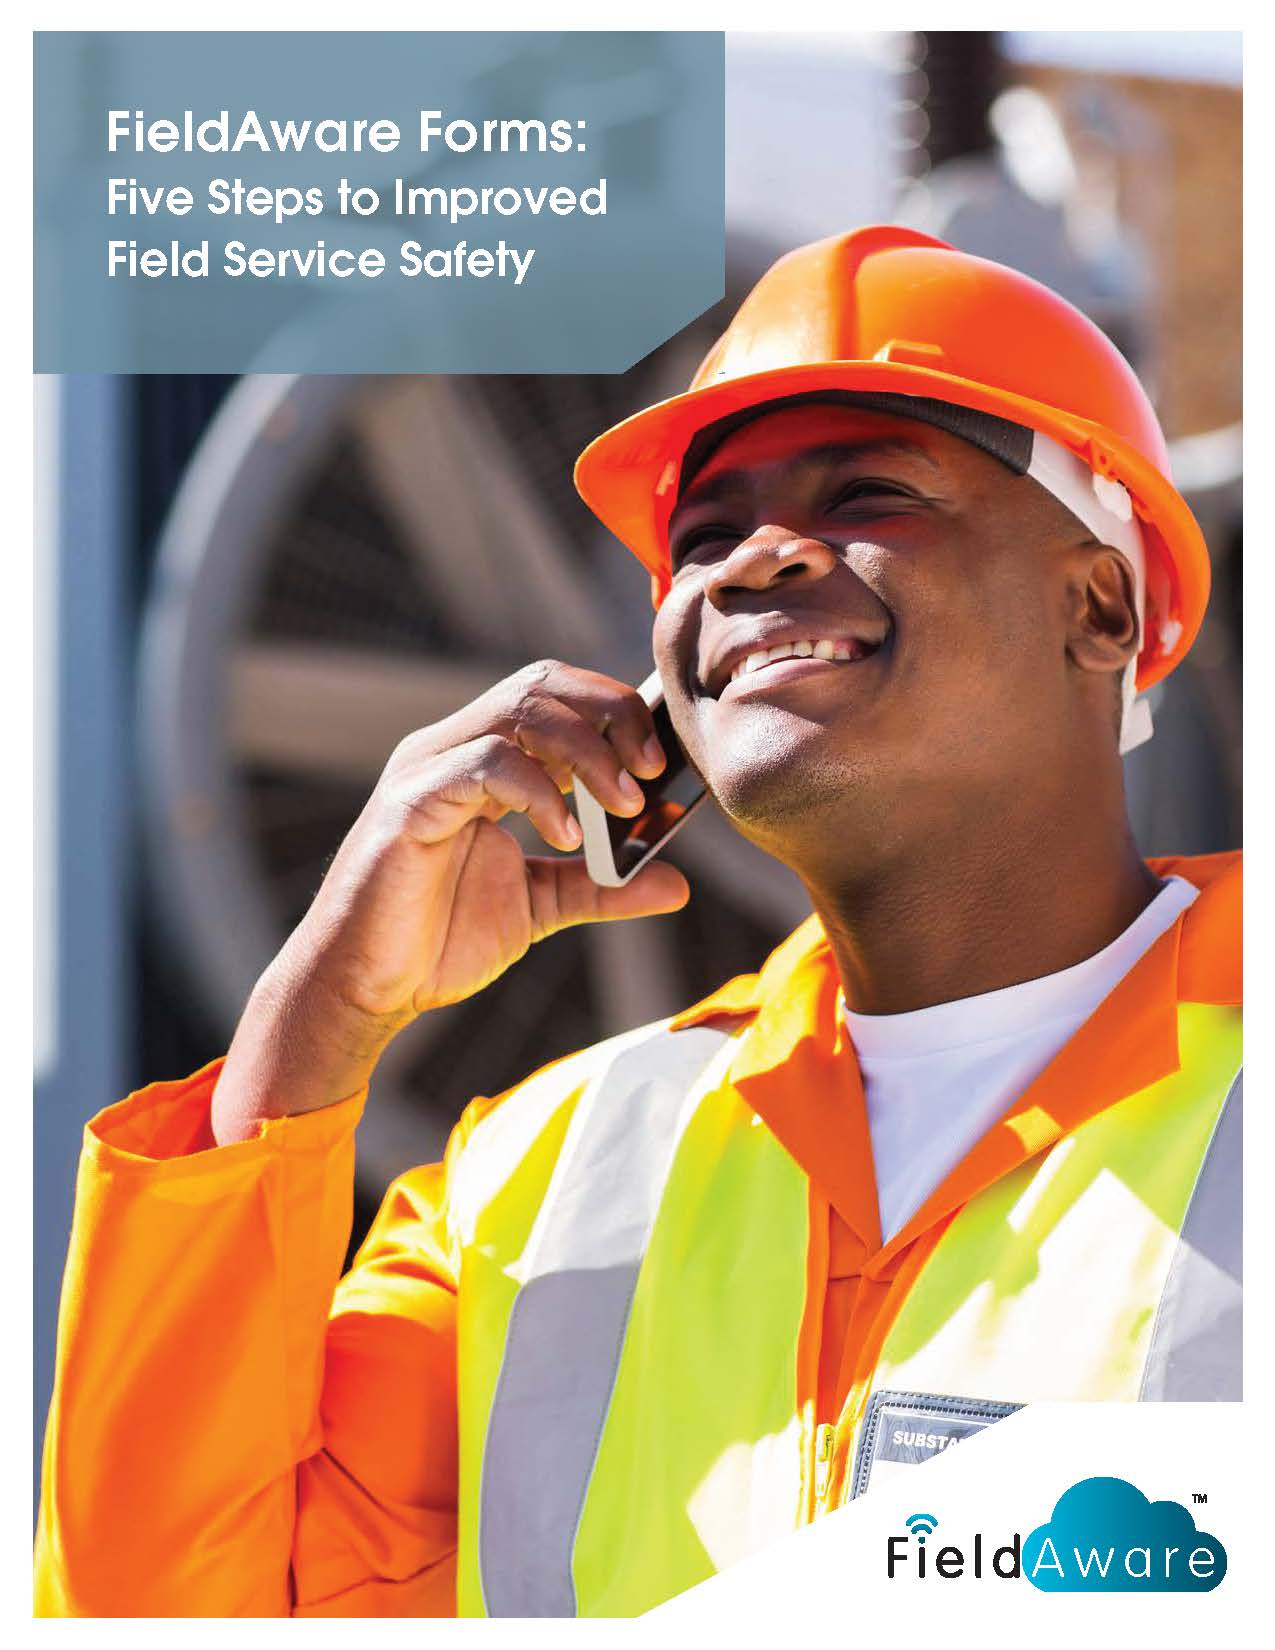 FieldAware Forms - Five Steps To Improved Field Service Safety White Paper